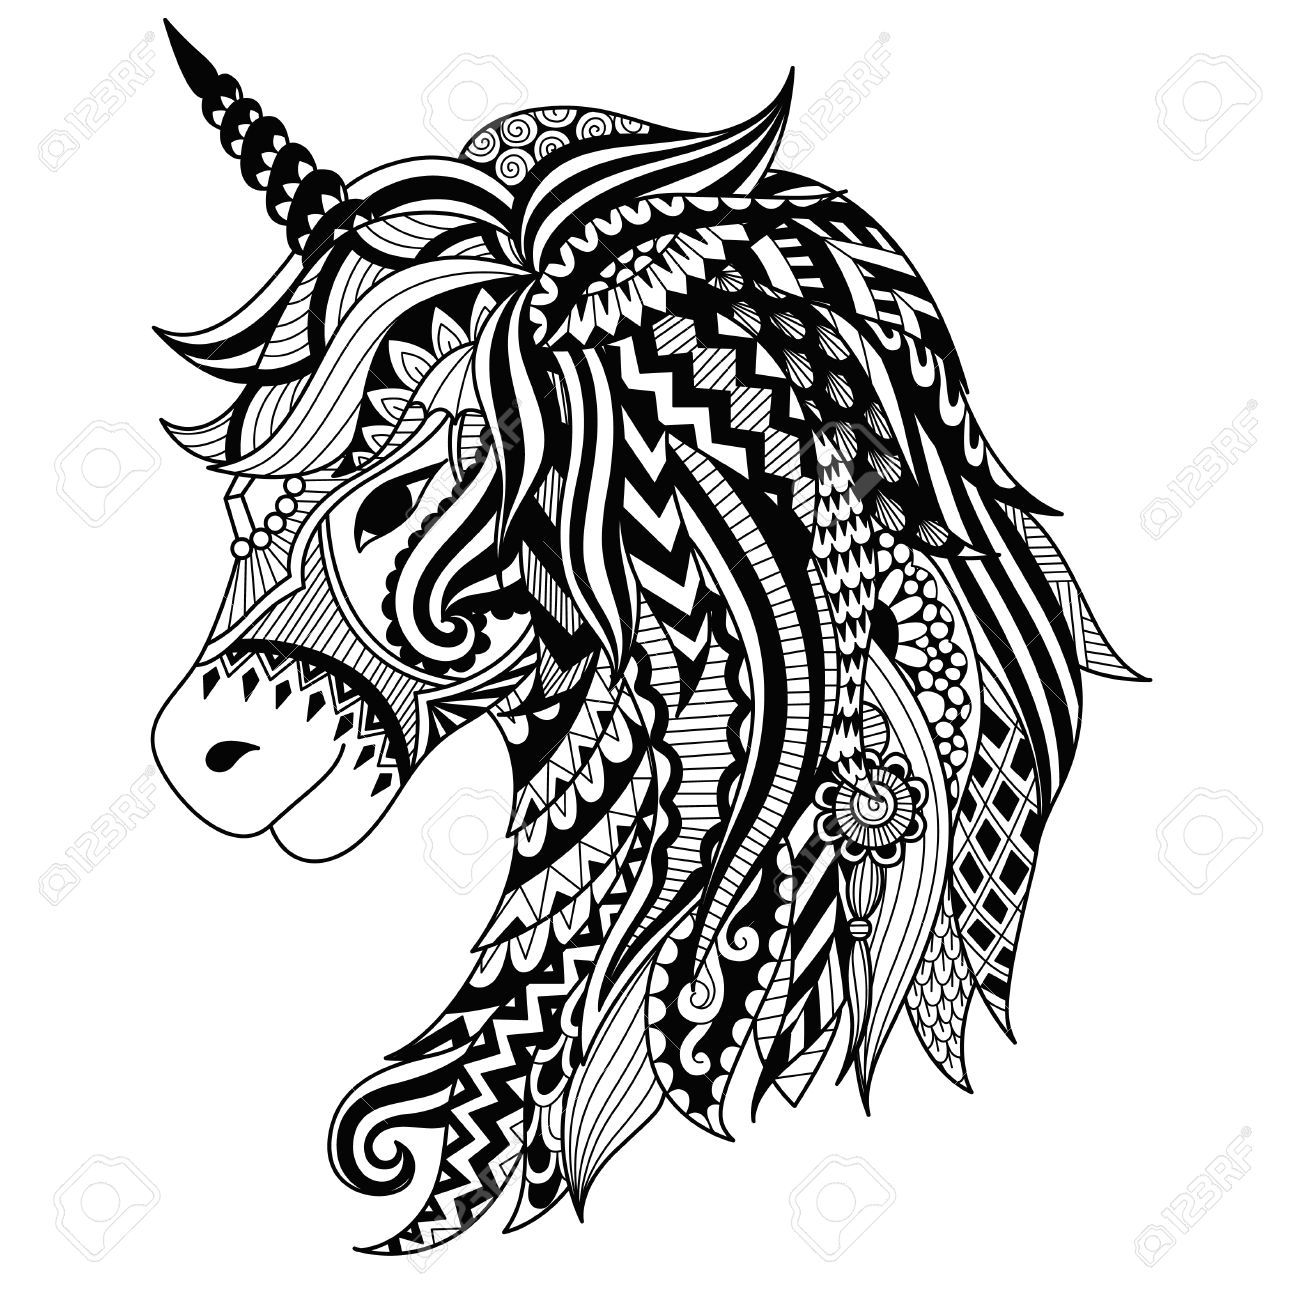 Drawing Unicorn Zentangle Style For Coloring Book Tattoo Shirt